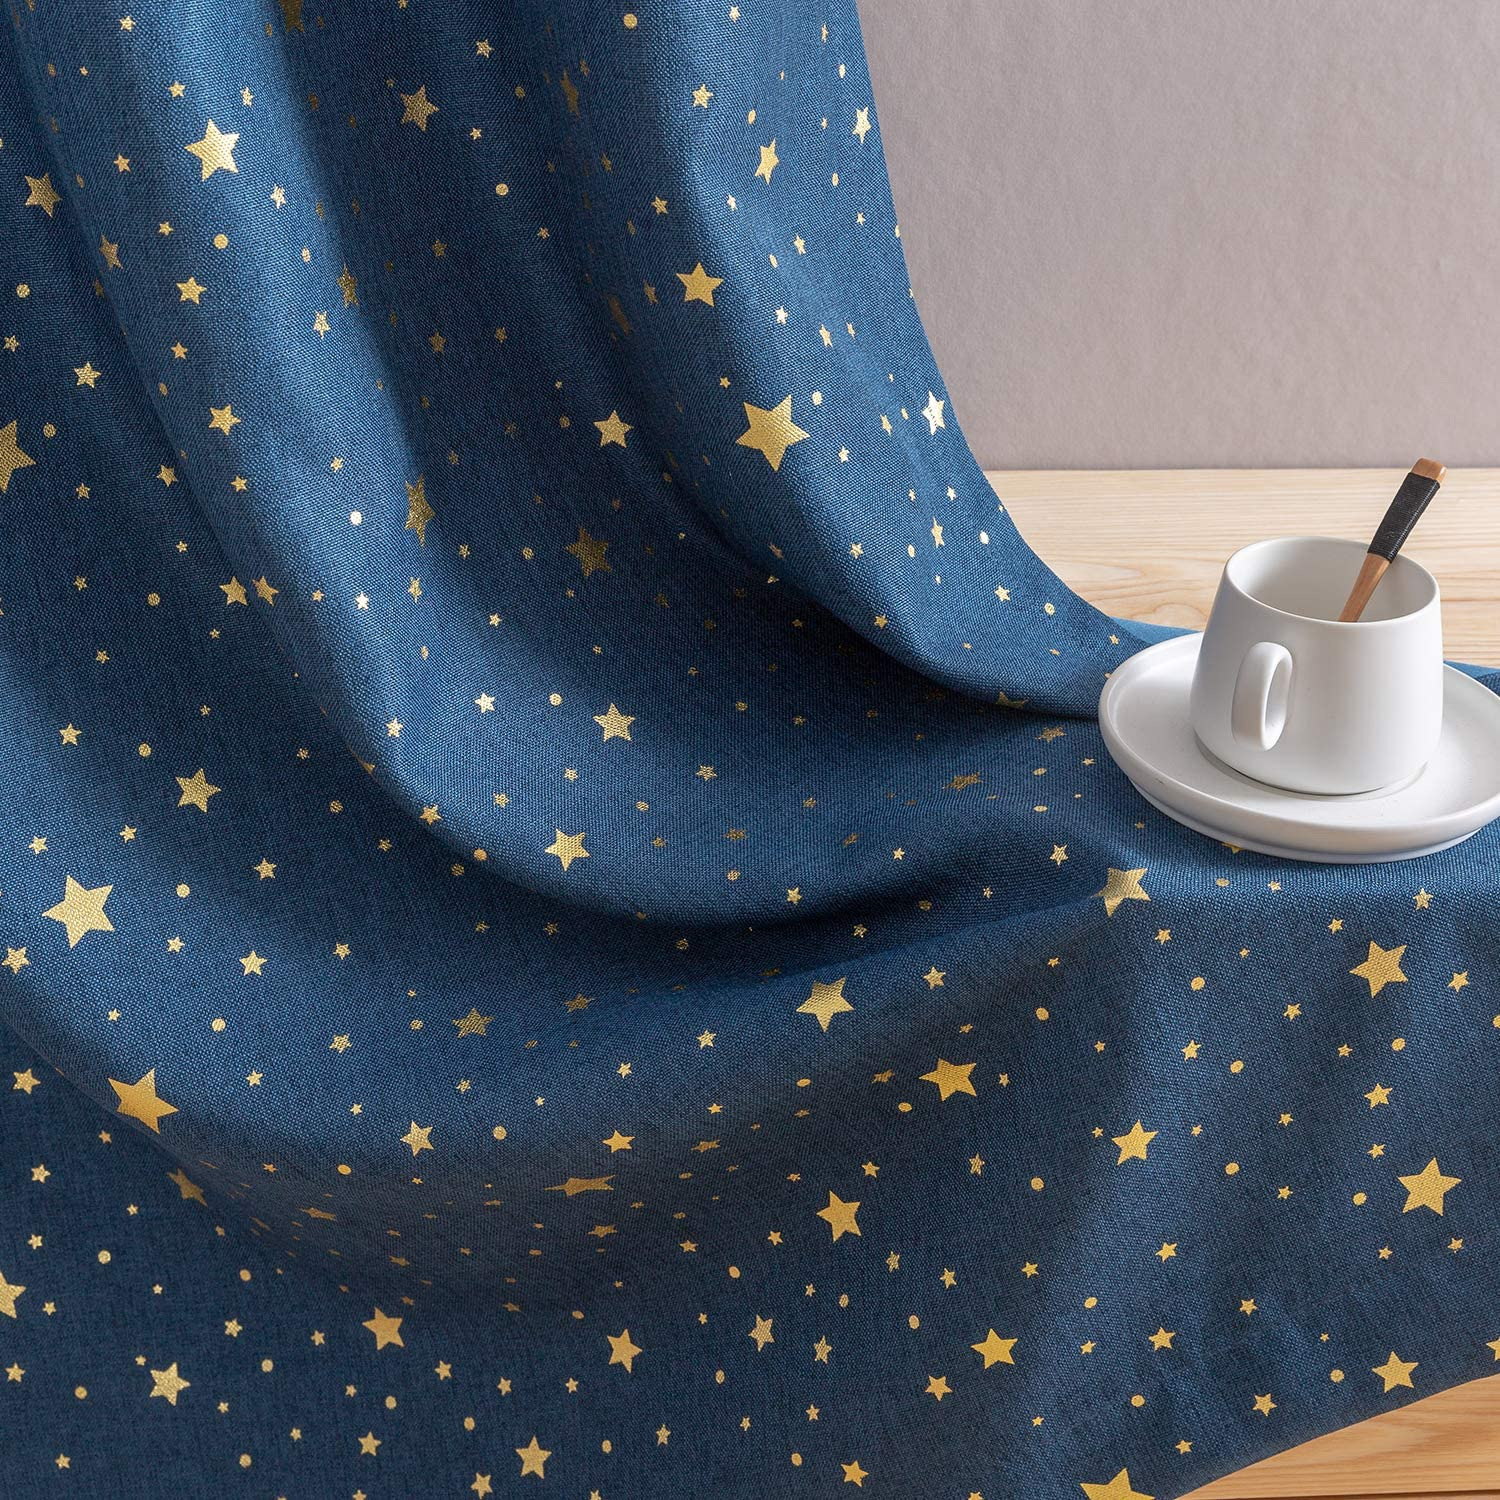 """jinchan Blackout Curtains for Kids Bedroom Gold on Flax Star Design Faux Linen Textured Grommets Shiny Star Window Drapes Living Room 2 Panels 95"""" L Blue"""